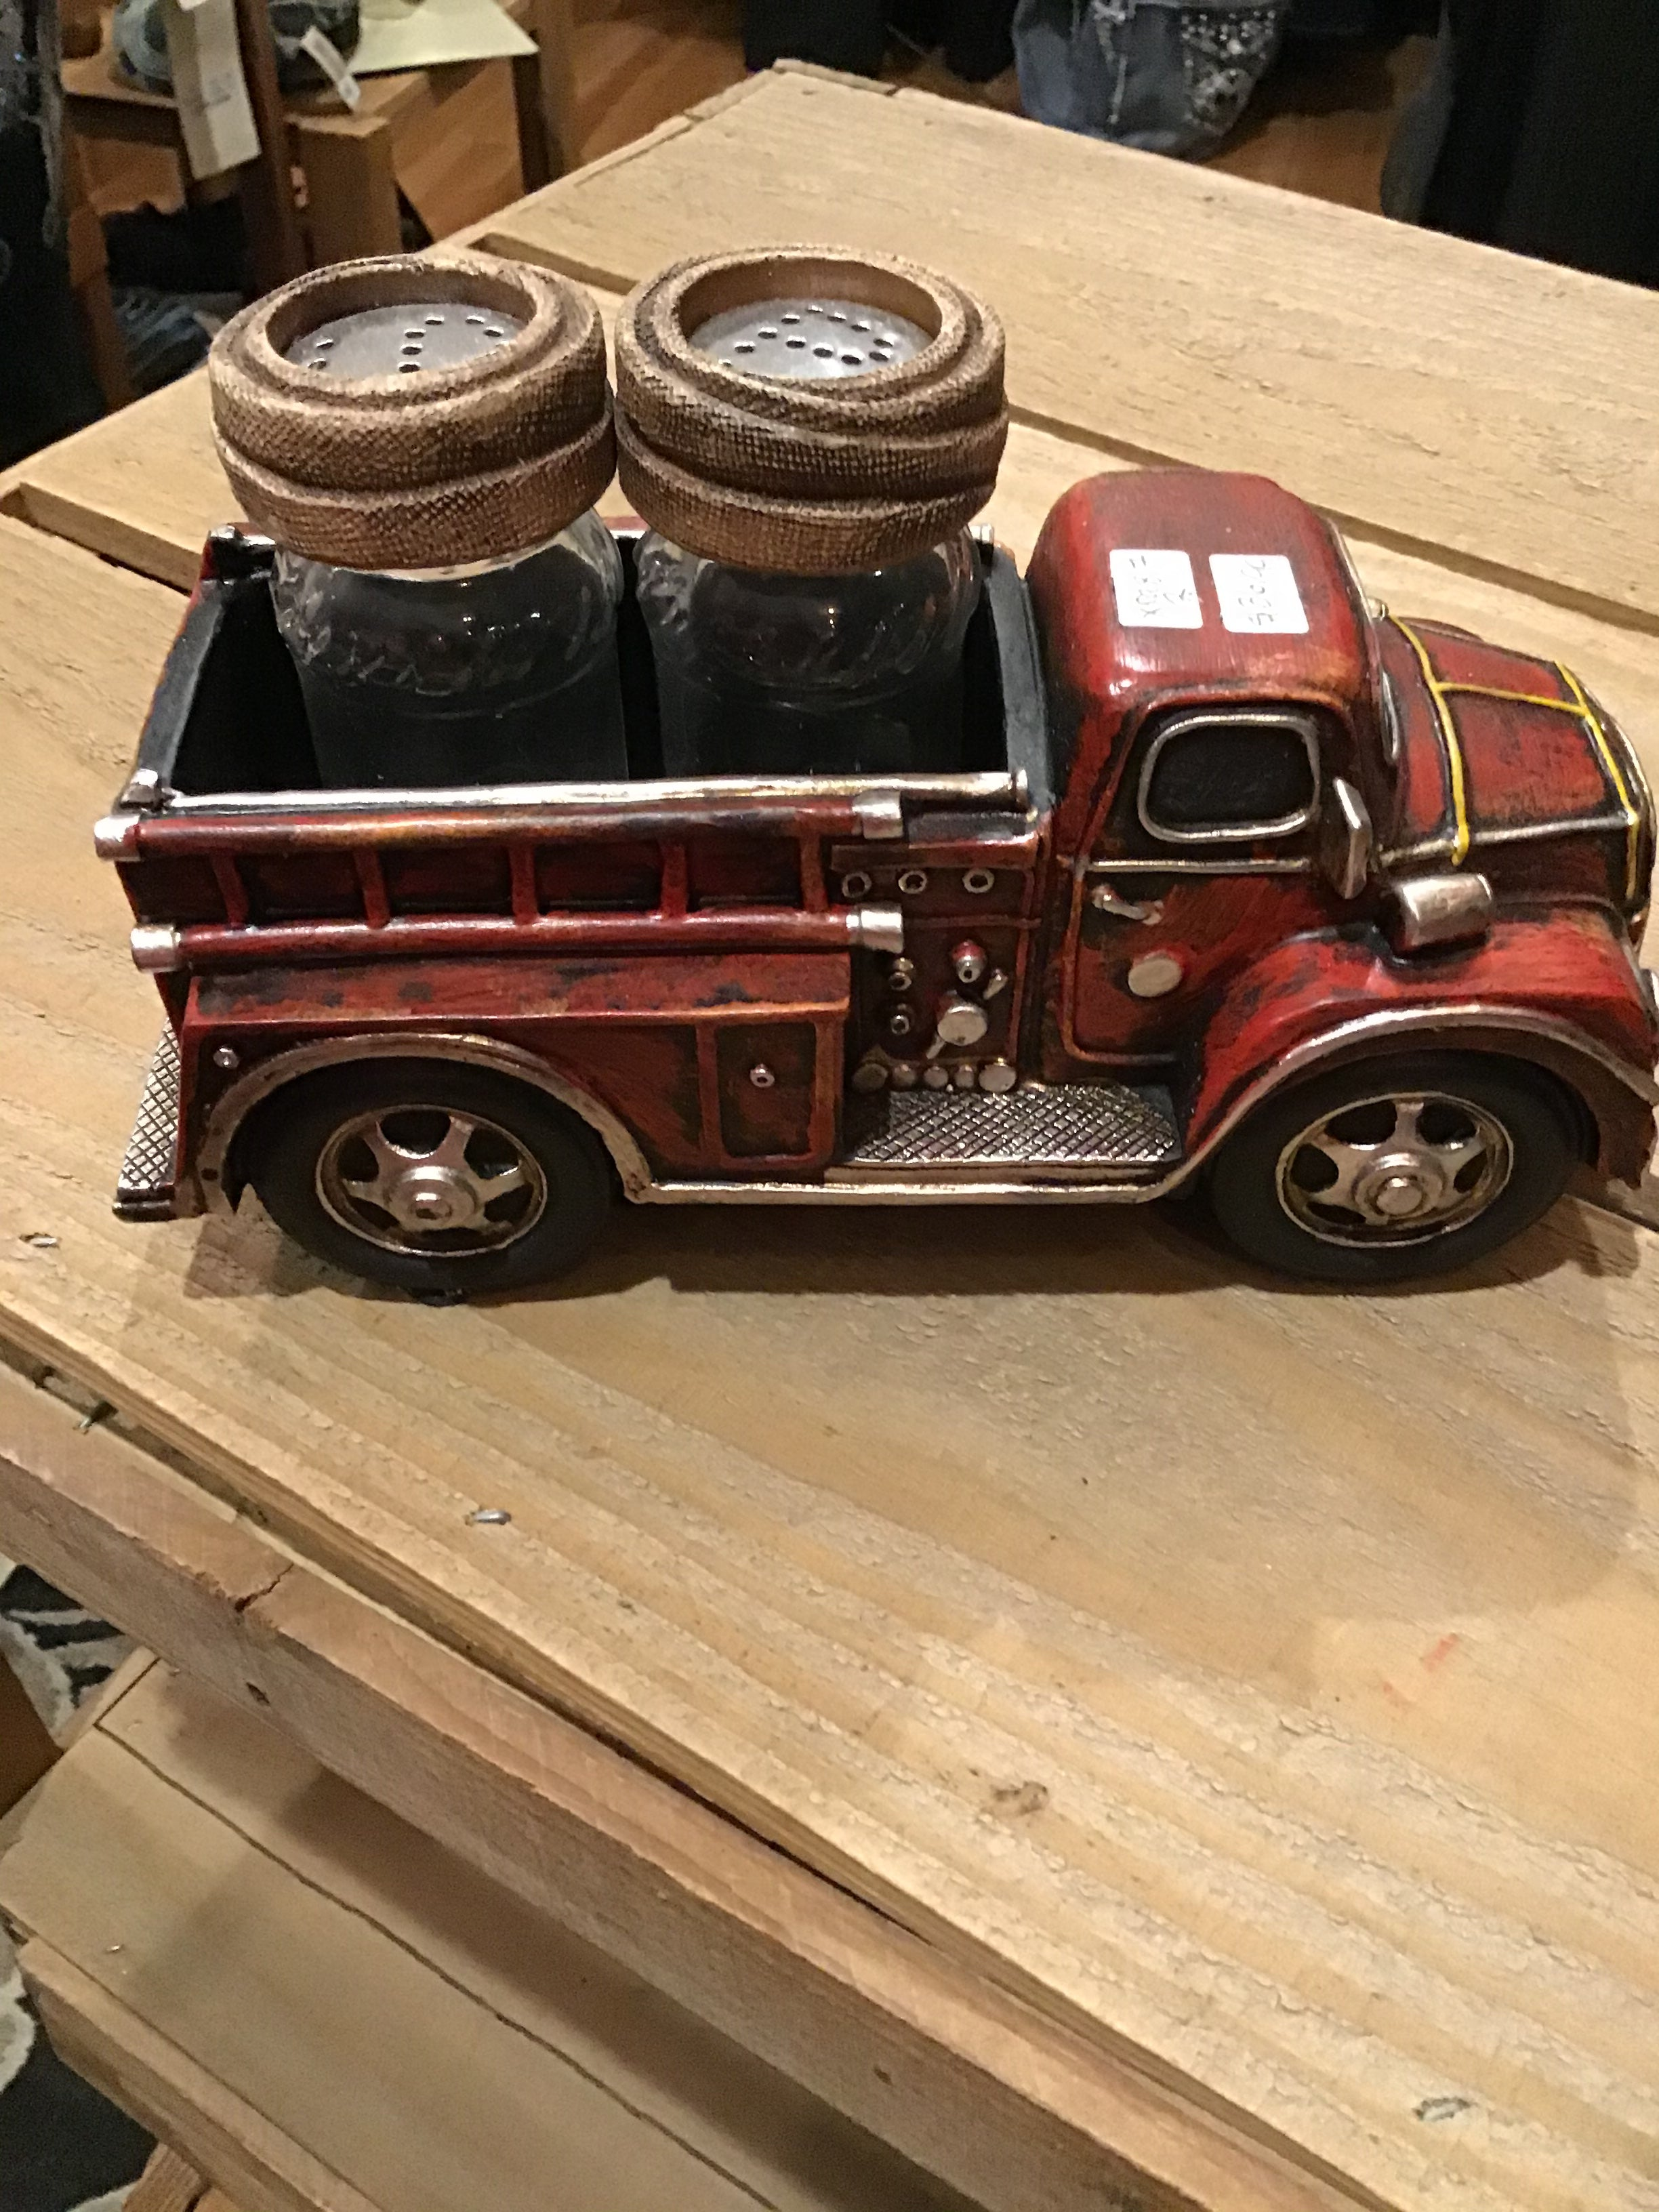 Salt & Pepper Shaker Holder